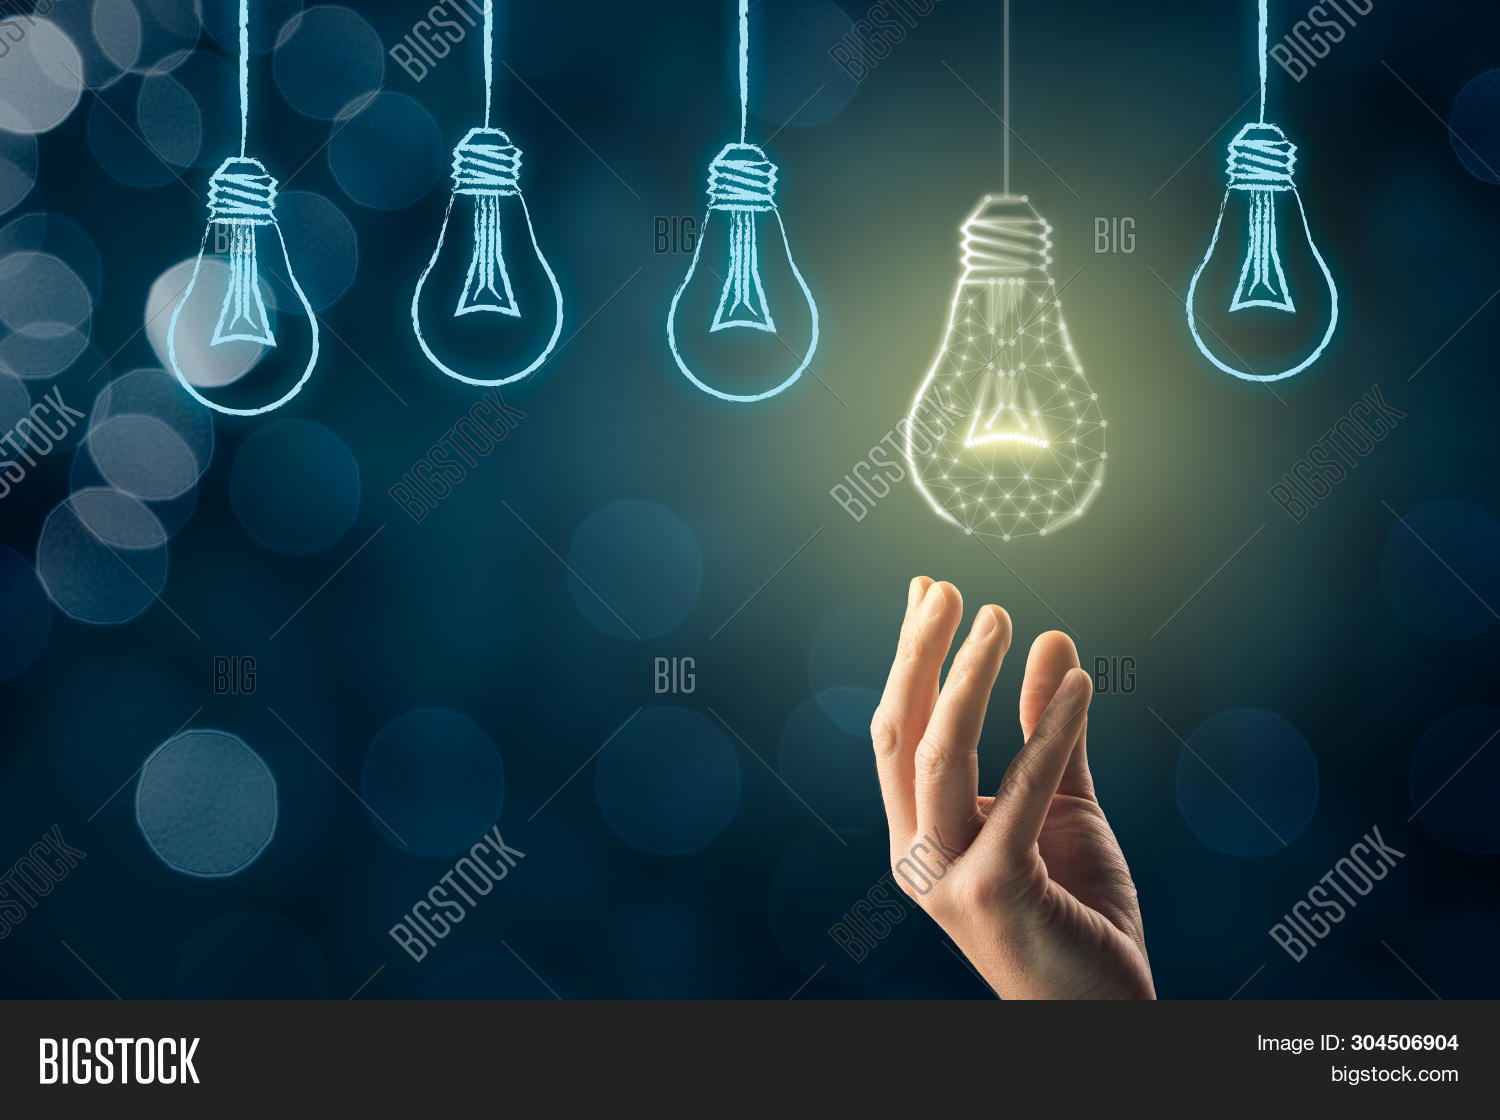 Creativity, Visionary And Innovation Concept. Businessman Pick Light Bulb (symbol Of Creativity And